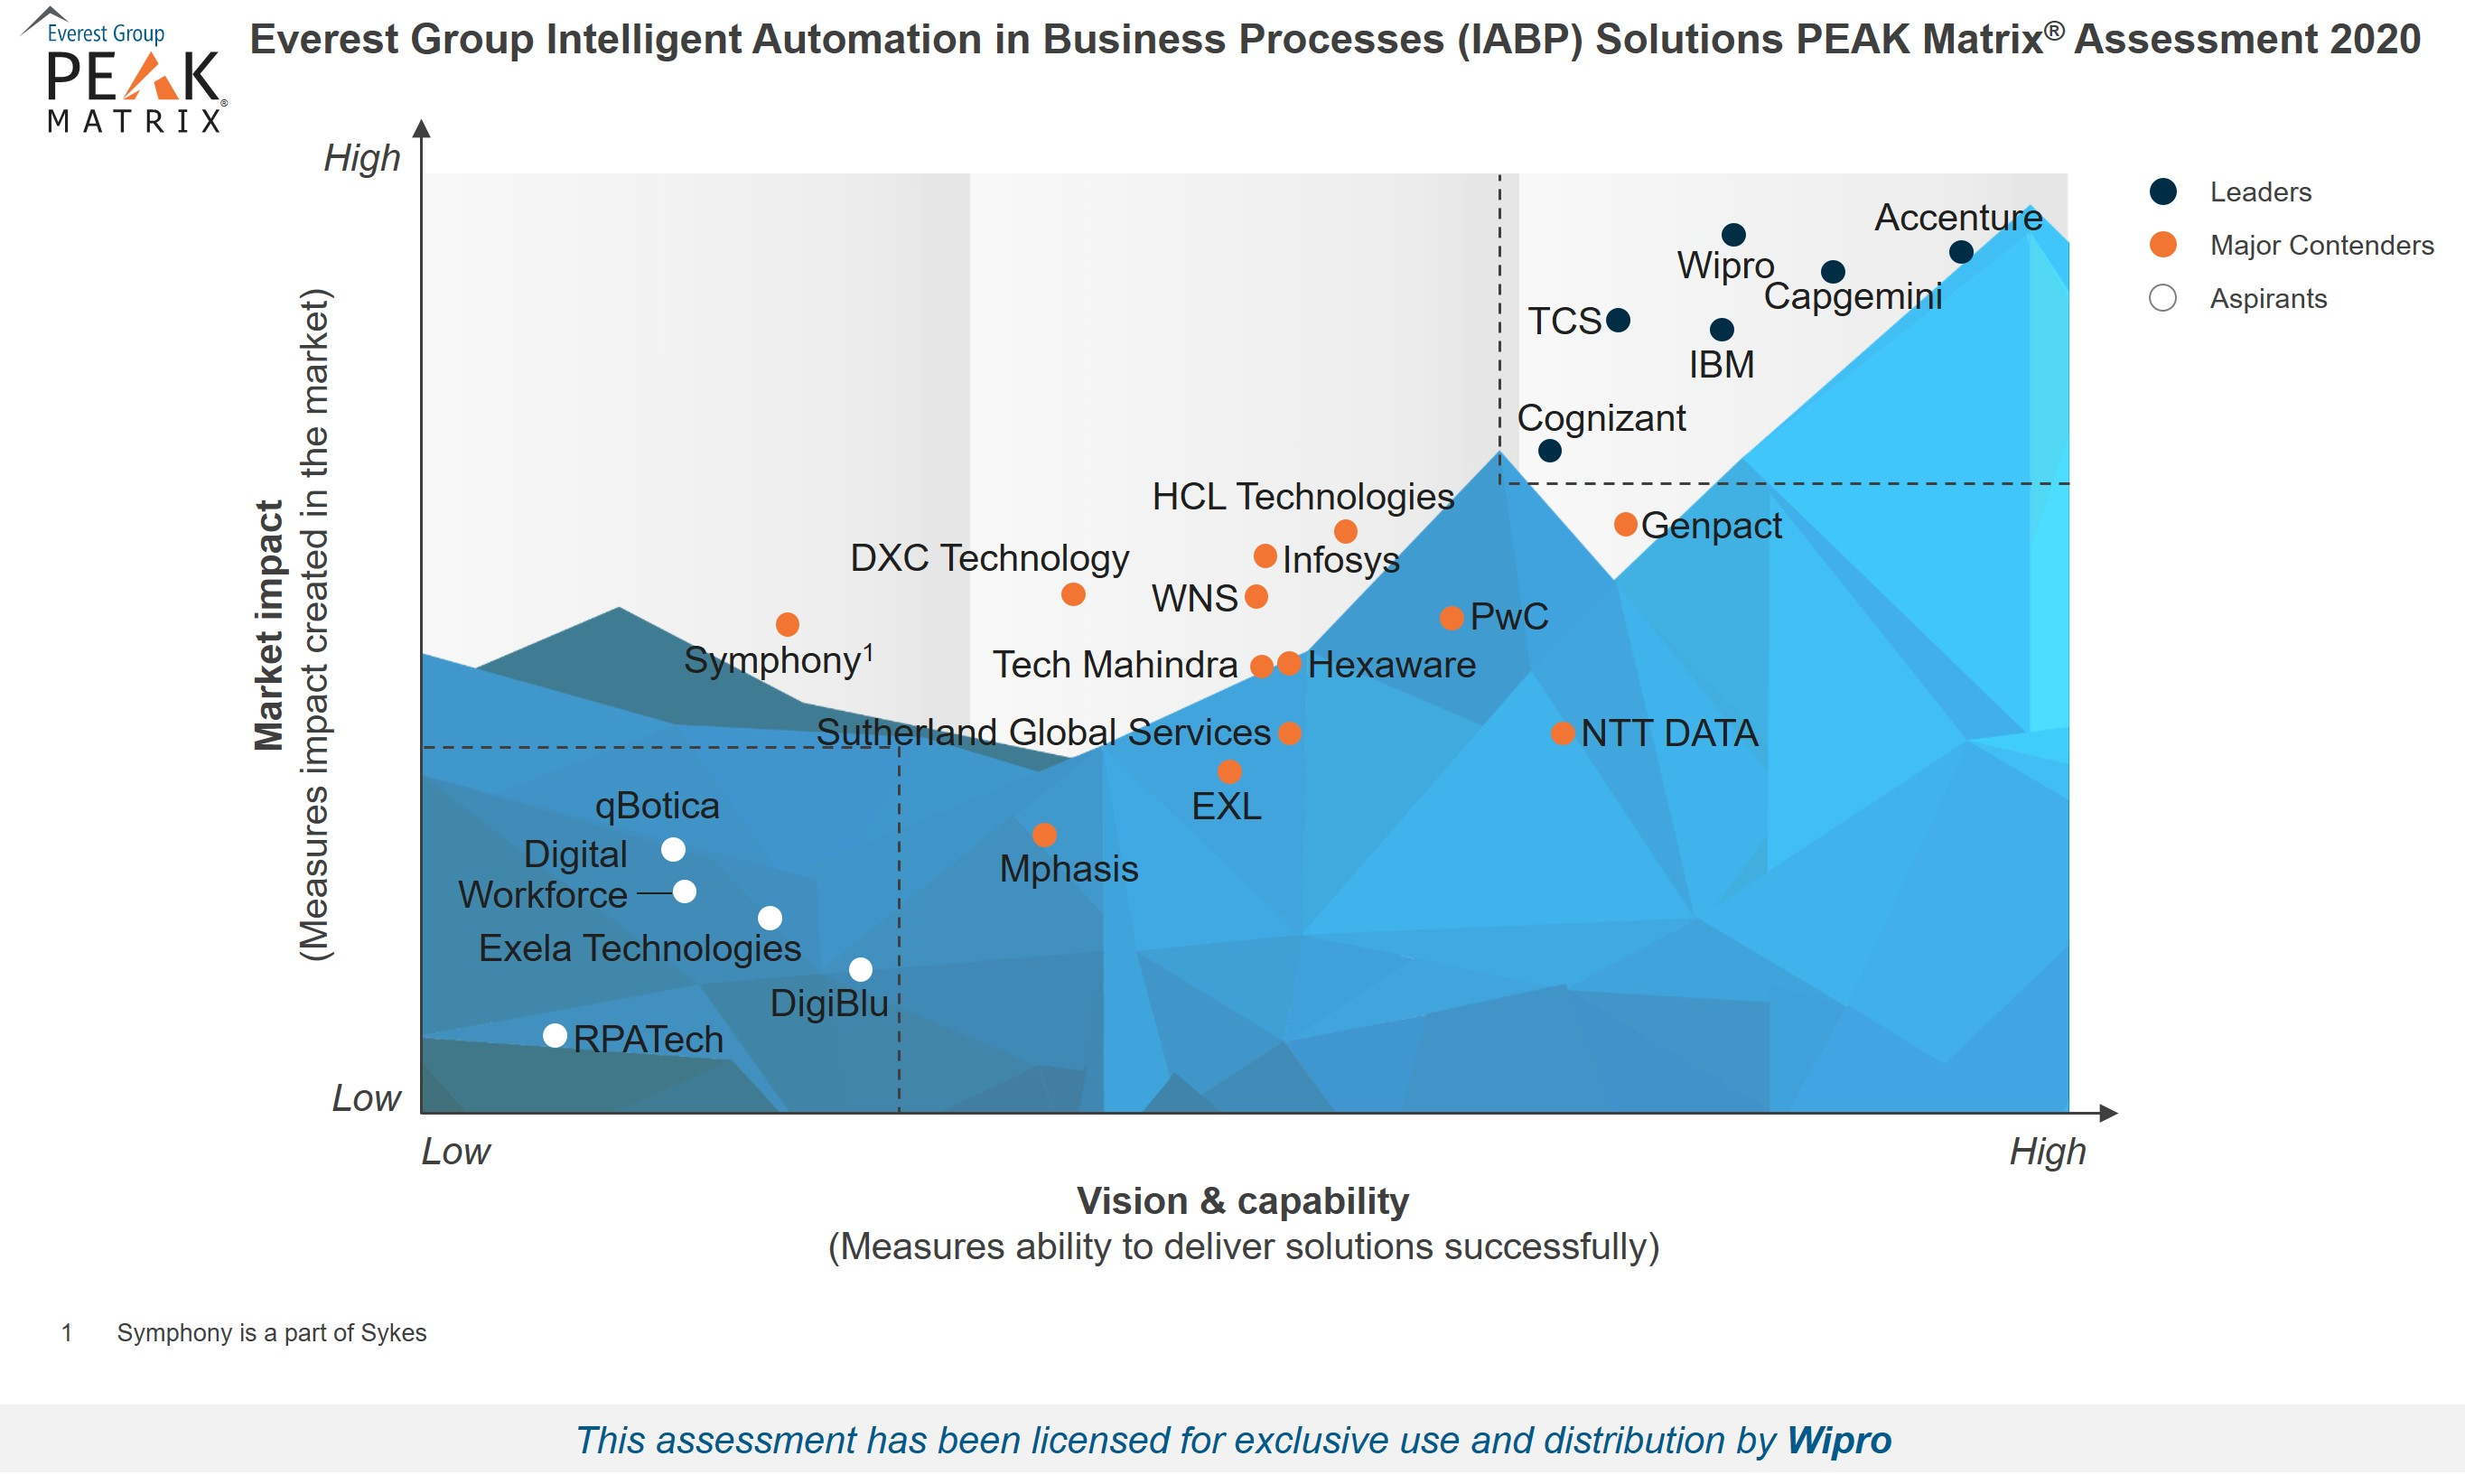 Wipro rated as a Leader in Everest Group IABP Solutions PEAK Matrix Assessment 2020